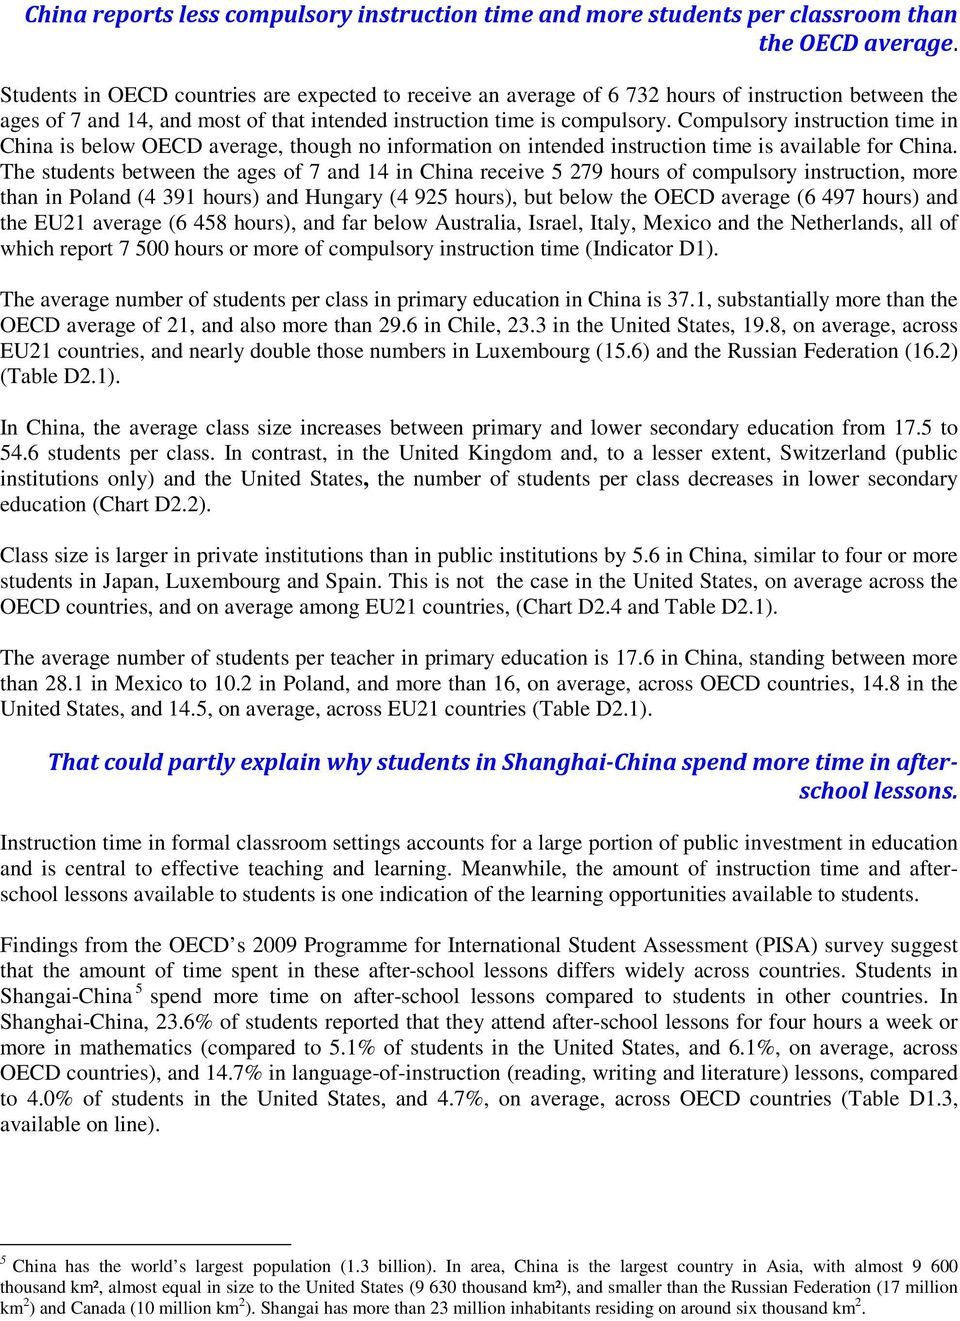 Compulsory instruction time in China is below OECD average, though no information on intended instruction time is available for China.